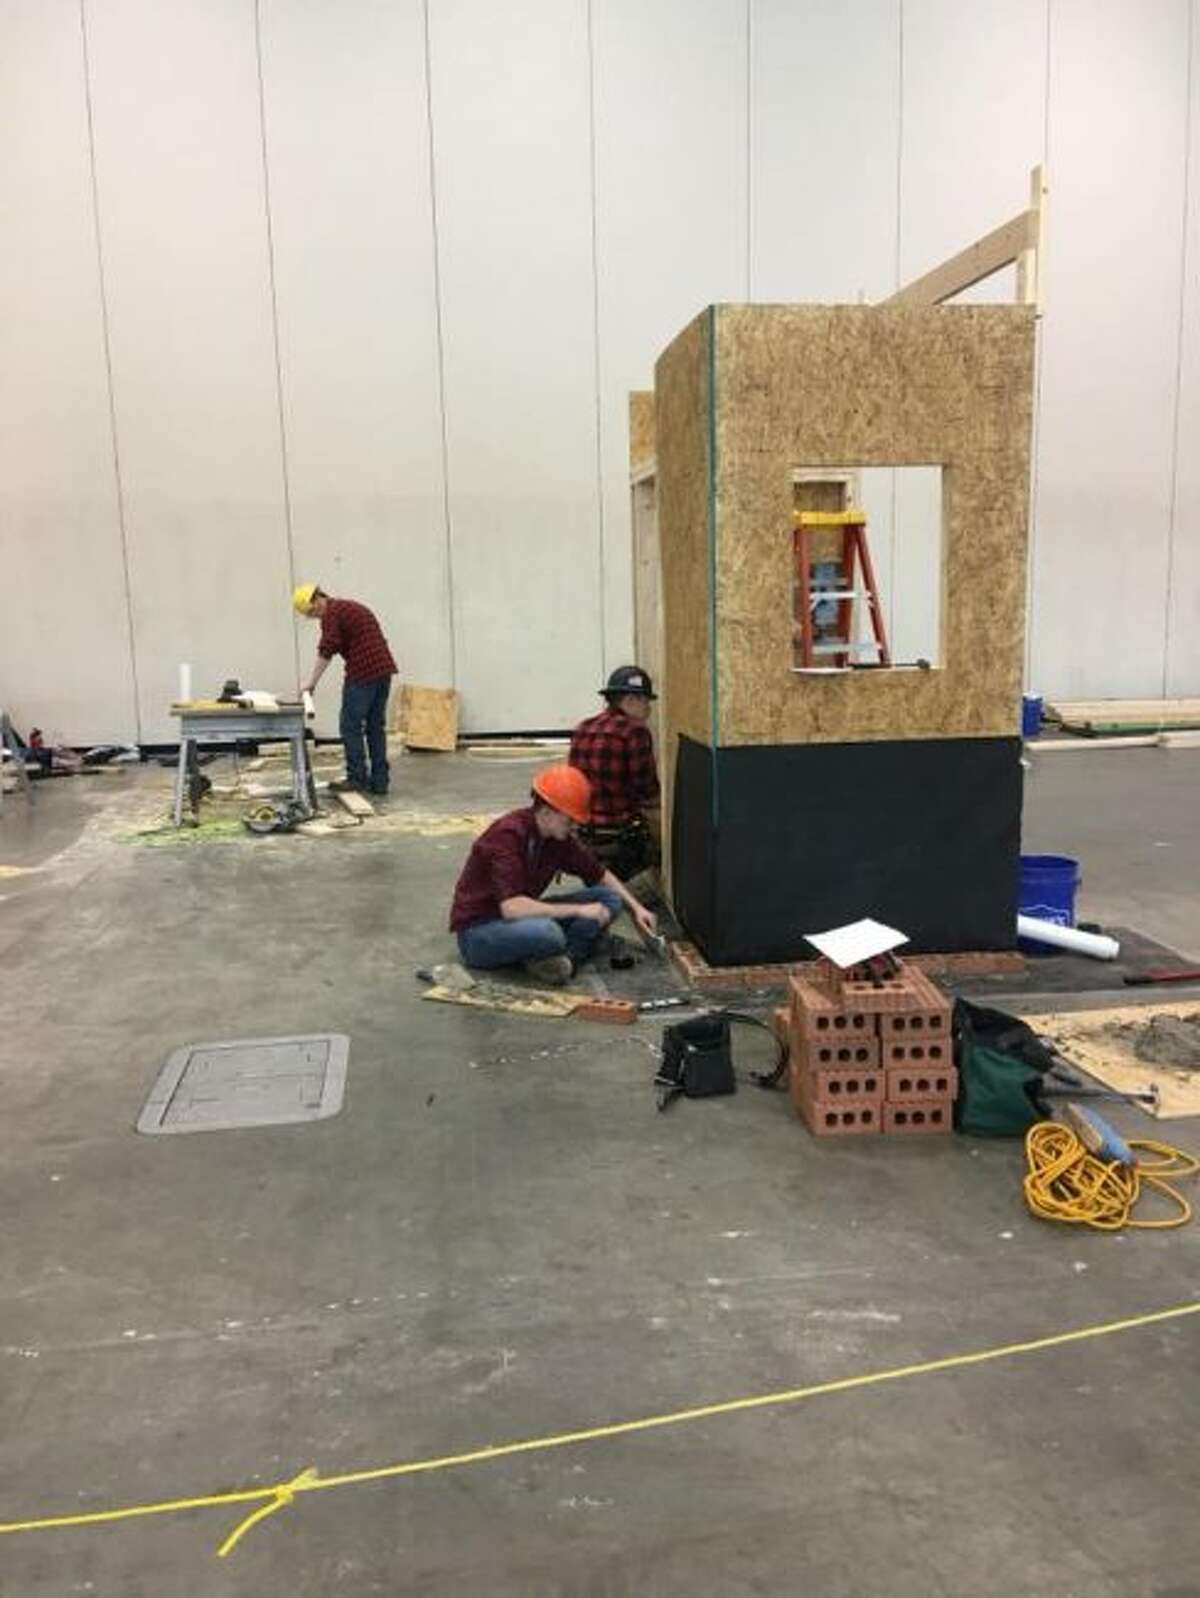 The MOCC construction team, consisting of Basil Beers, Nicholas McHugh, Tyler Schmitt and William Weinberg, competes during the SkillsUSA challenge. Overall, 16 MOCC students earned bronze, silver or gold medals. (Courtesy photo)